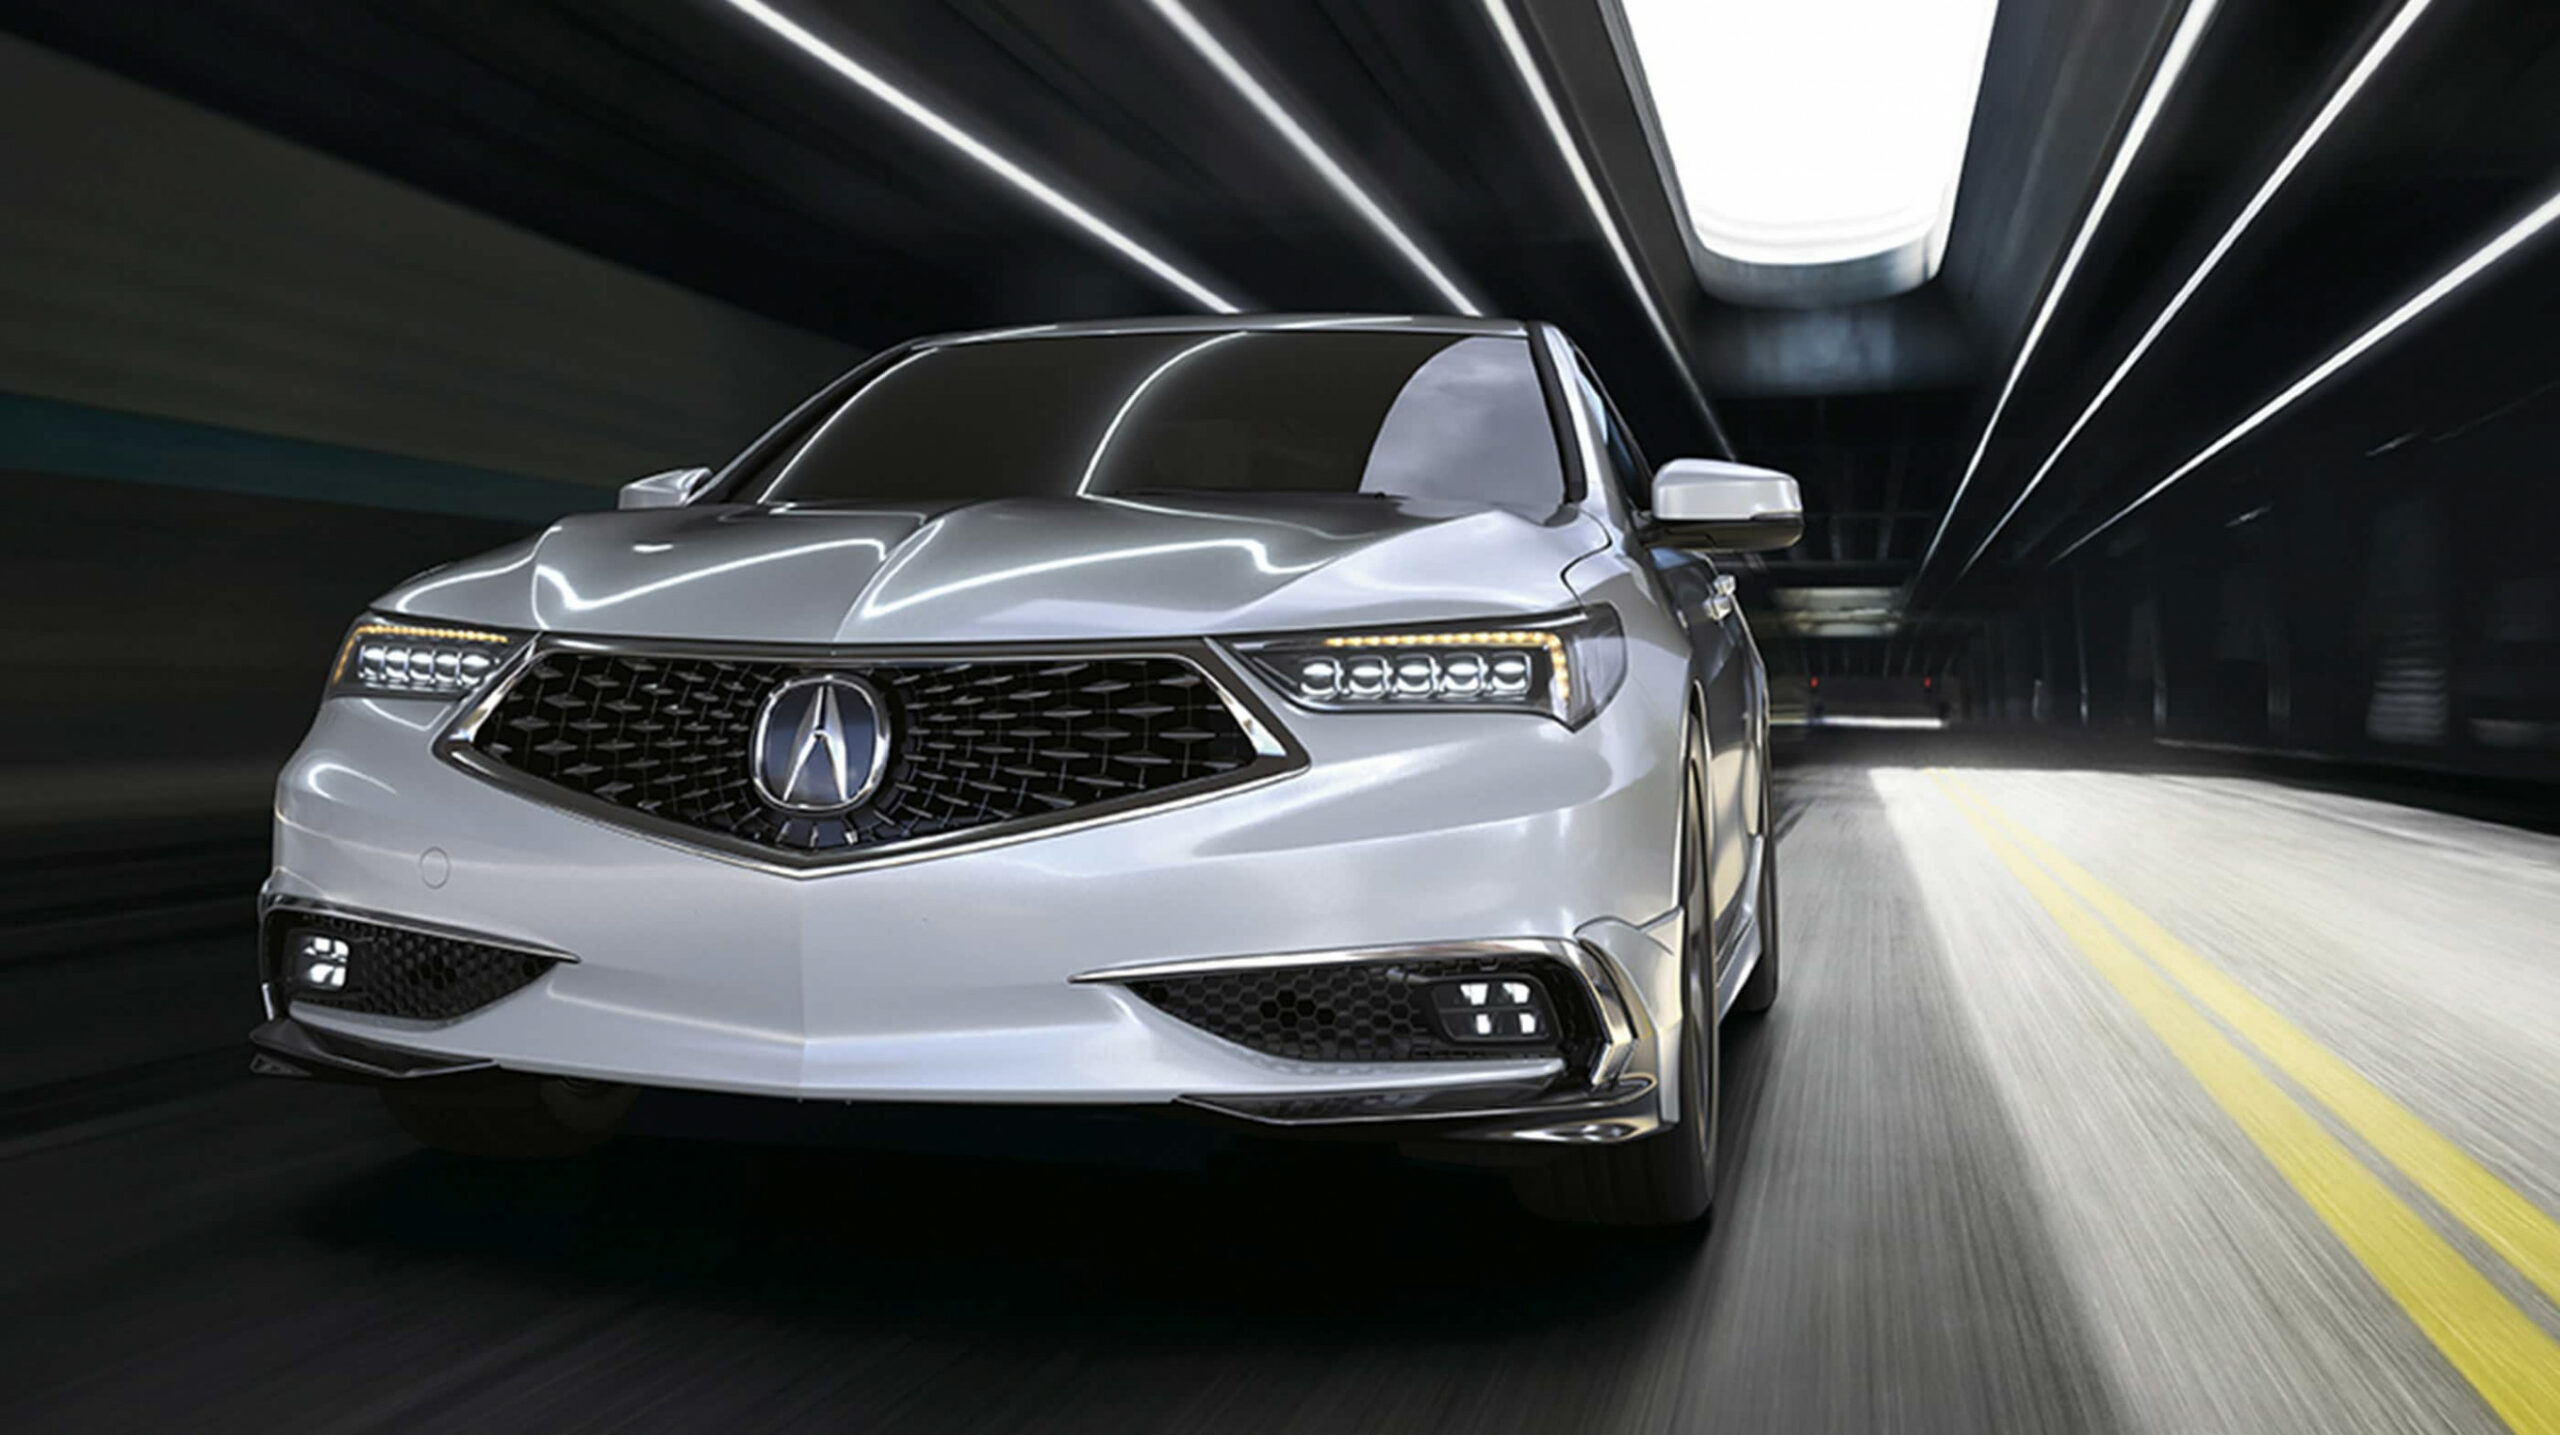 7 Acura TLX for Sale near Orland Park, IL - 2020 acura for sale